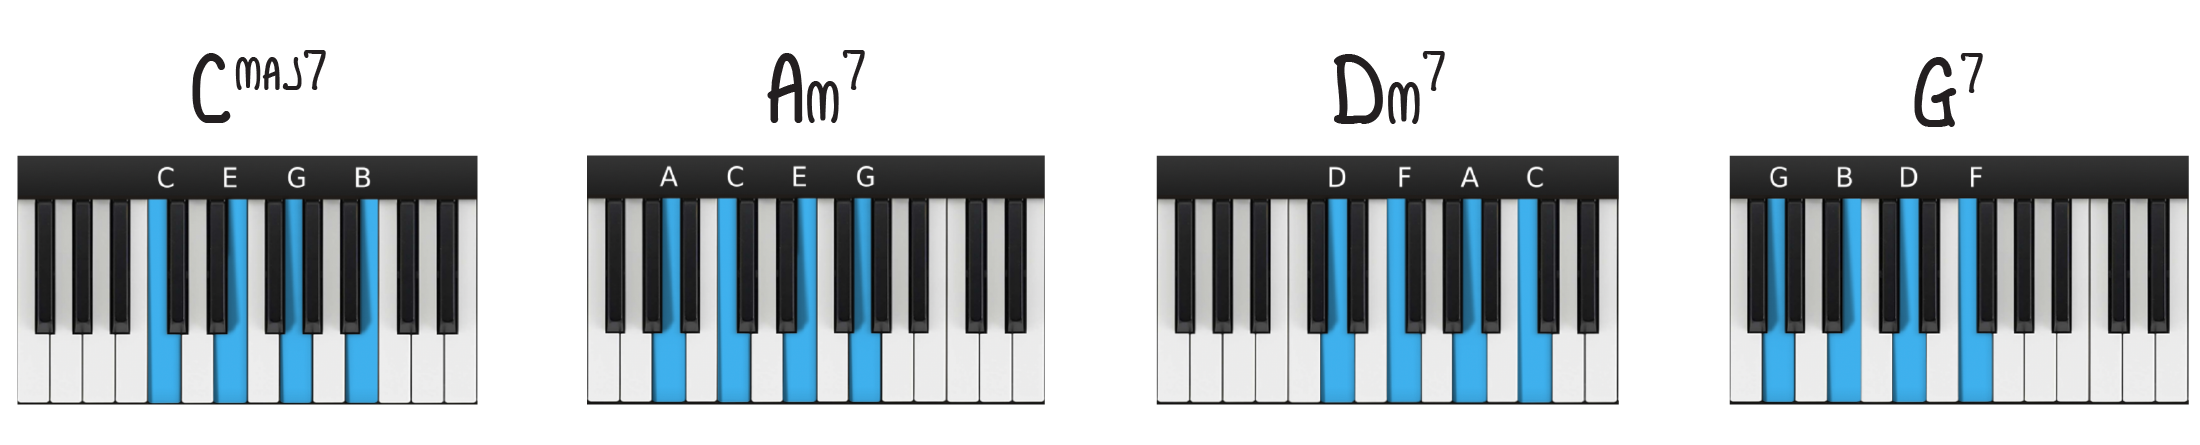 C Major root position 7th chords—1 6 2 5